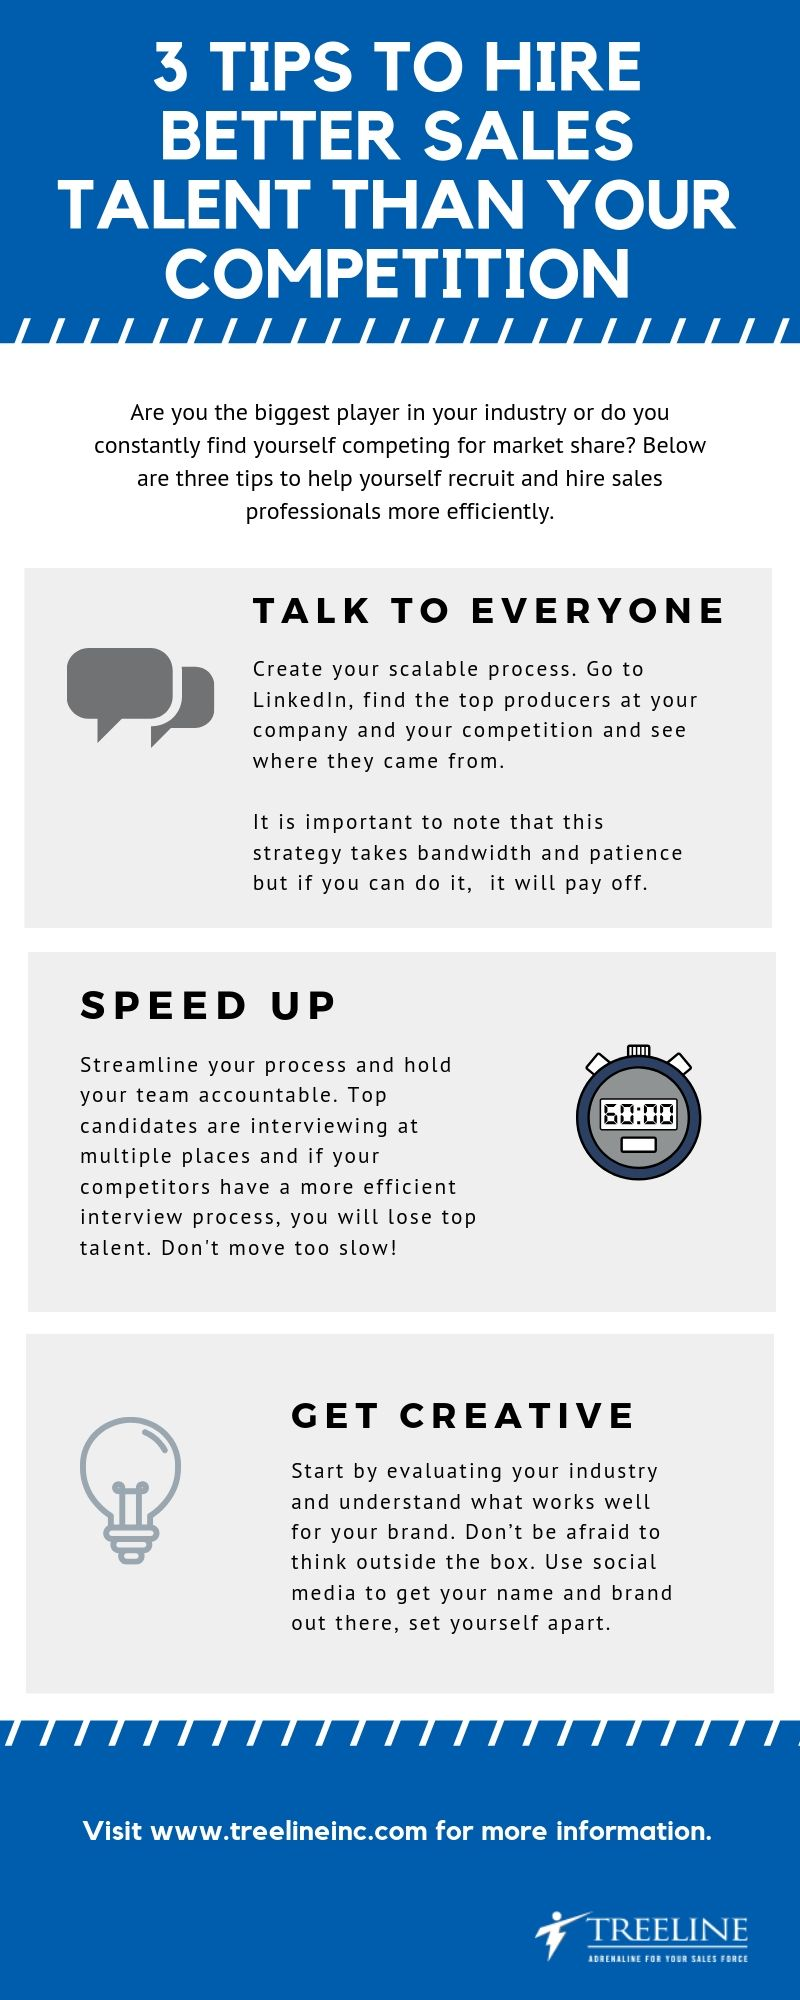 3 Tips to Hire Better than your competition Infographic